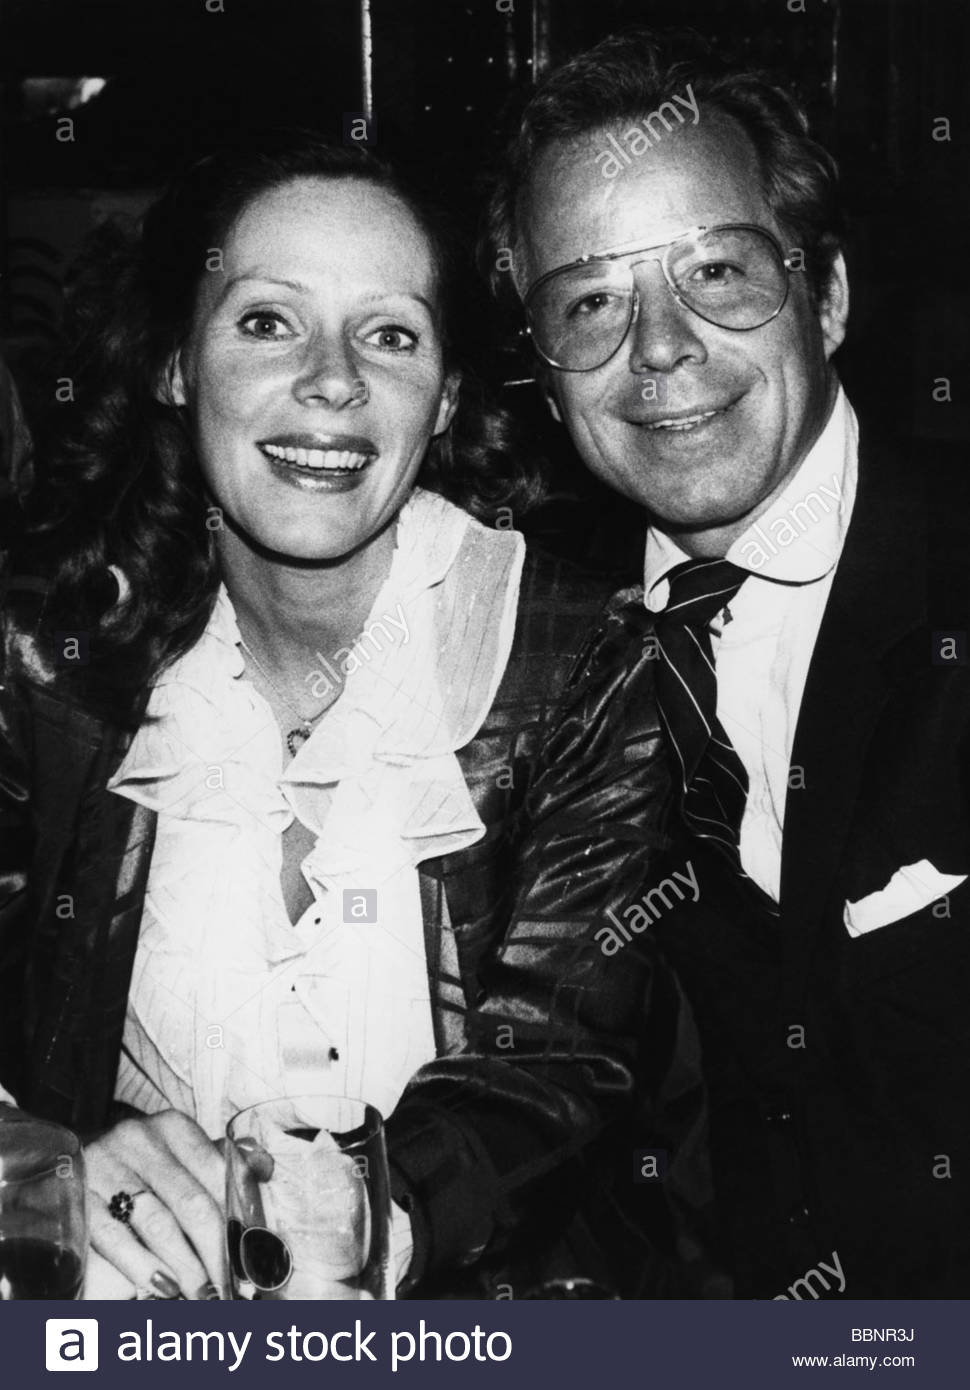 Hinz, Michael, 28.12.1939 - 6.11.2008, German actor, with his wife Viktoria Brams, 1980s, Additional-Rights-Clearances - Stock Image